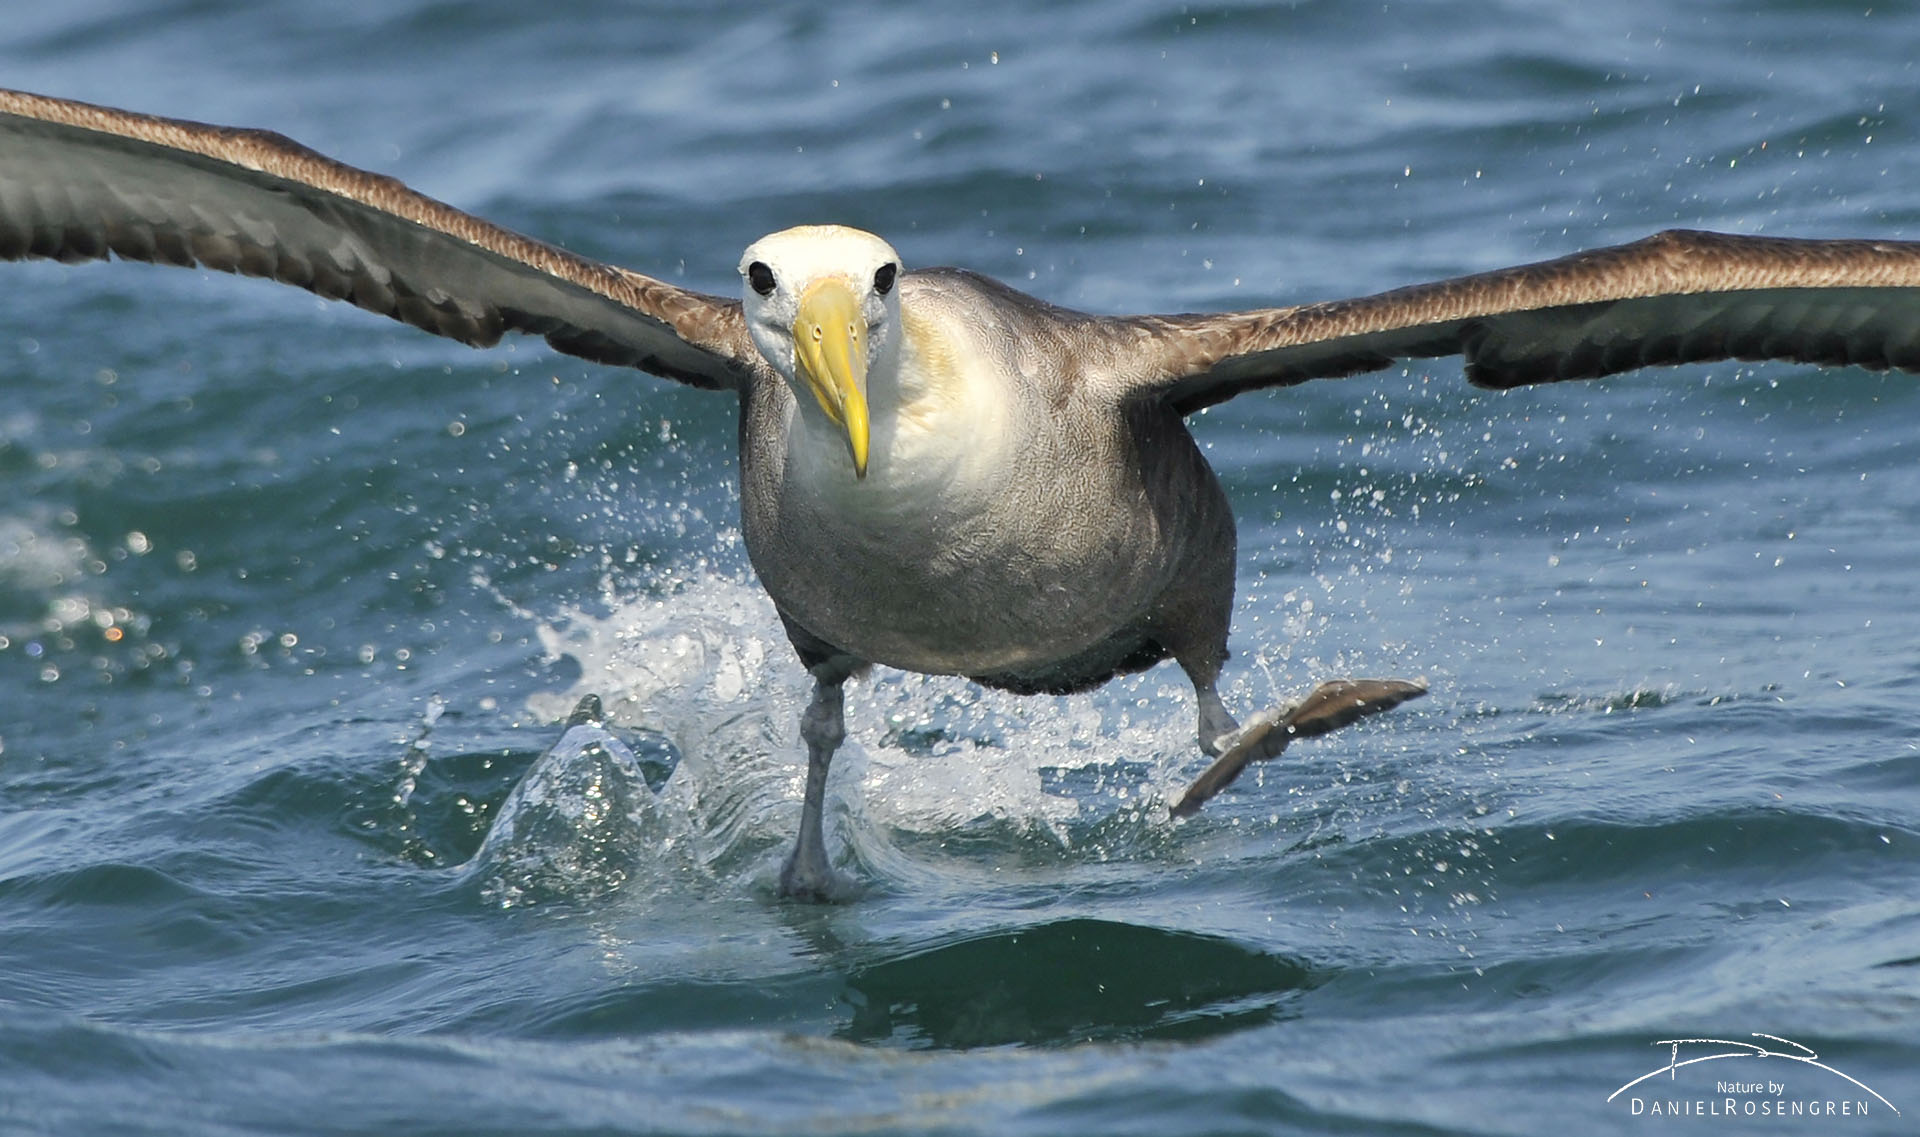 The critically endangered Waved albatross water skiing on the surface as it is landing. © Daniel Rosengren